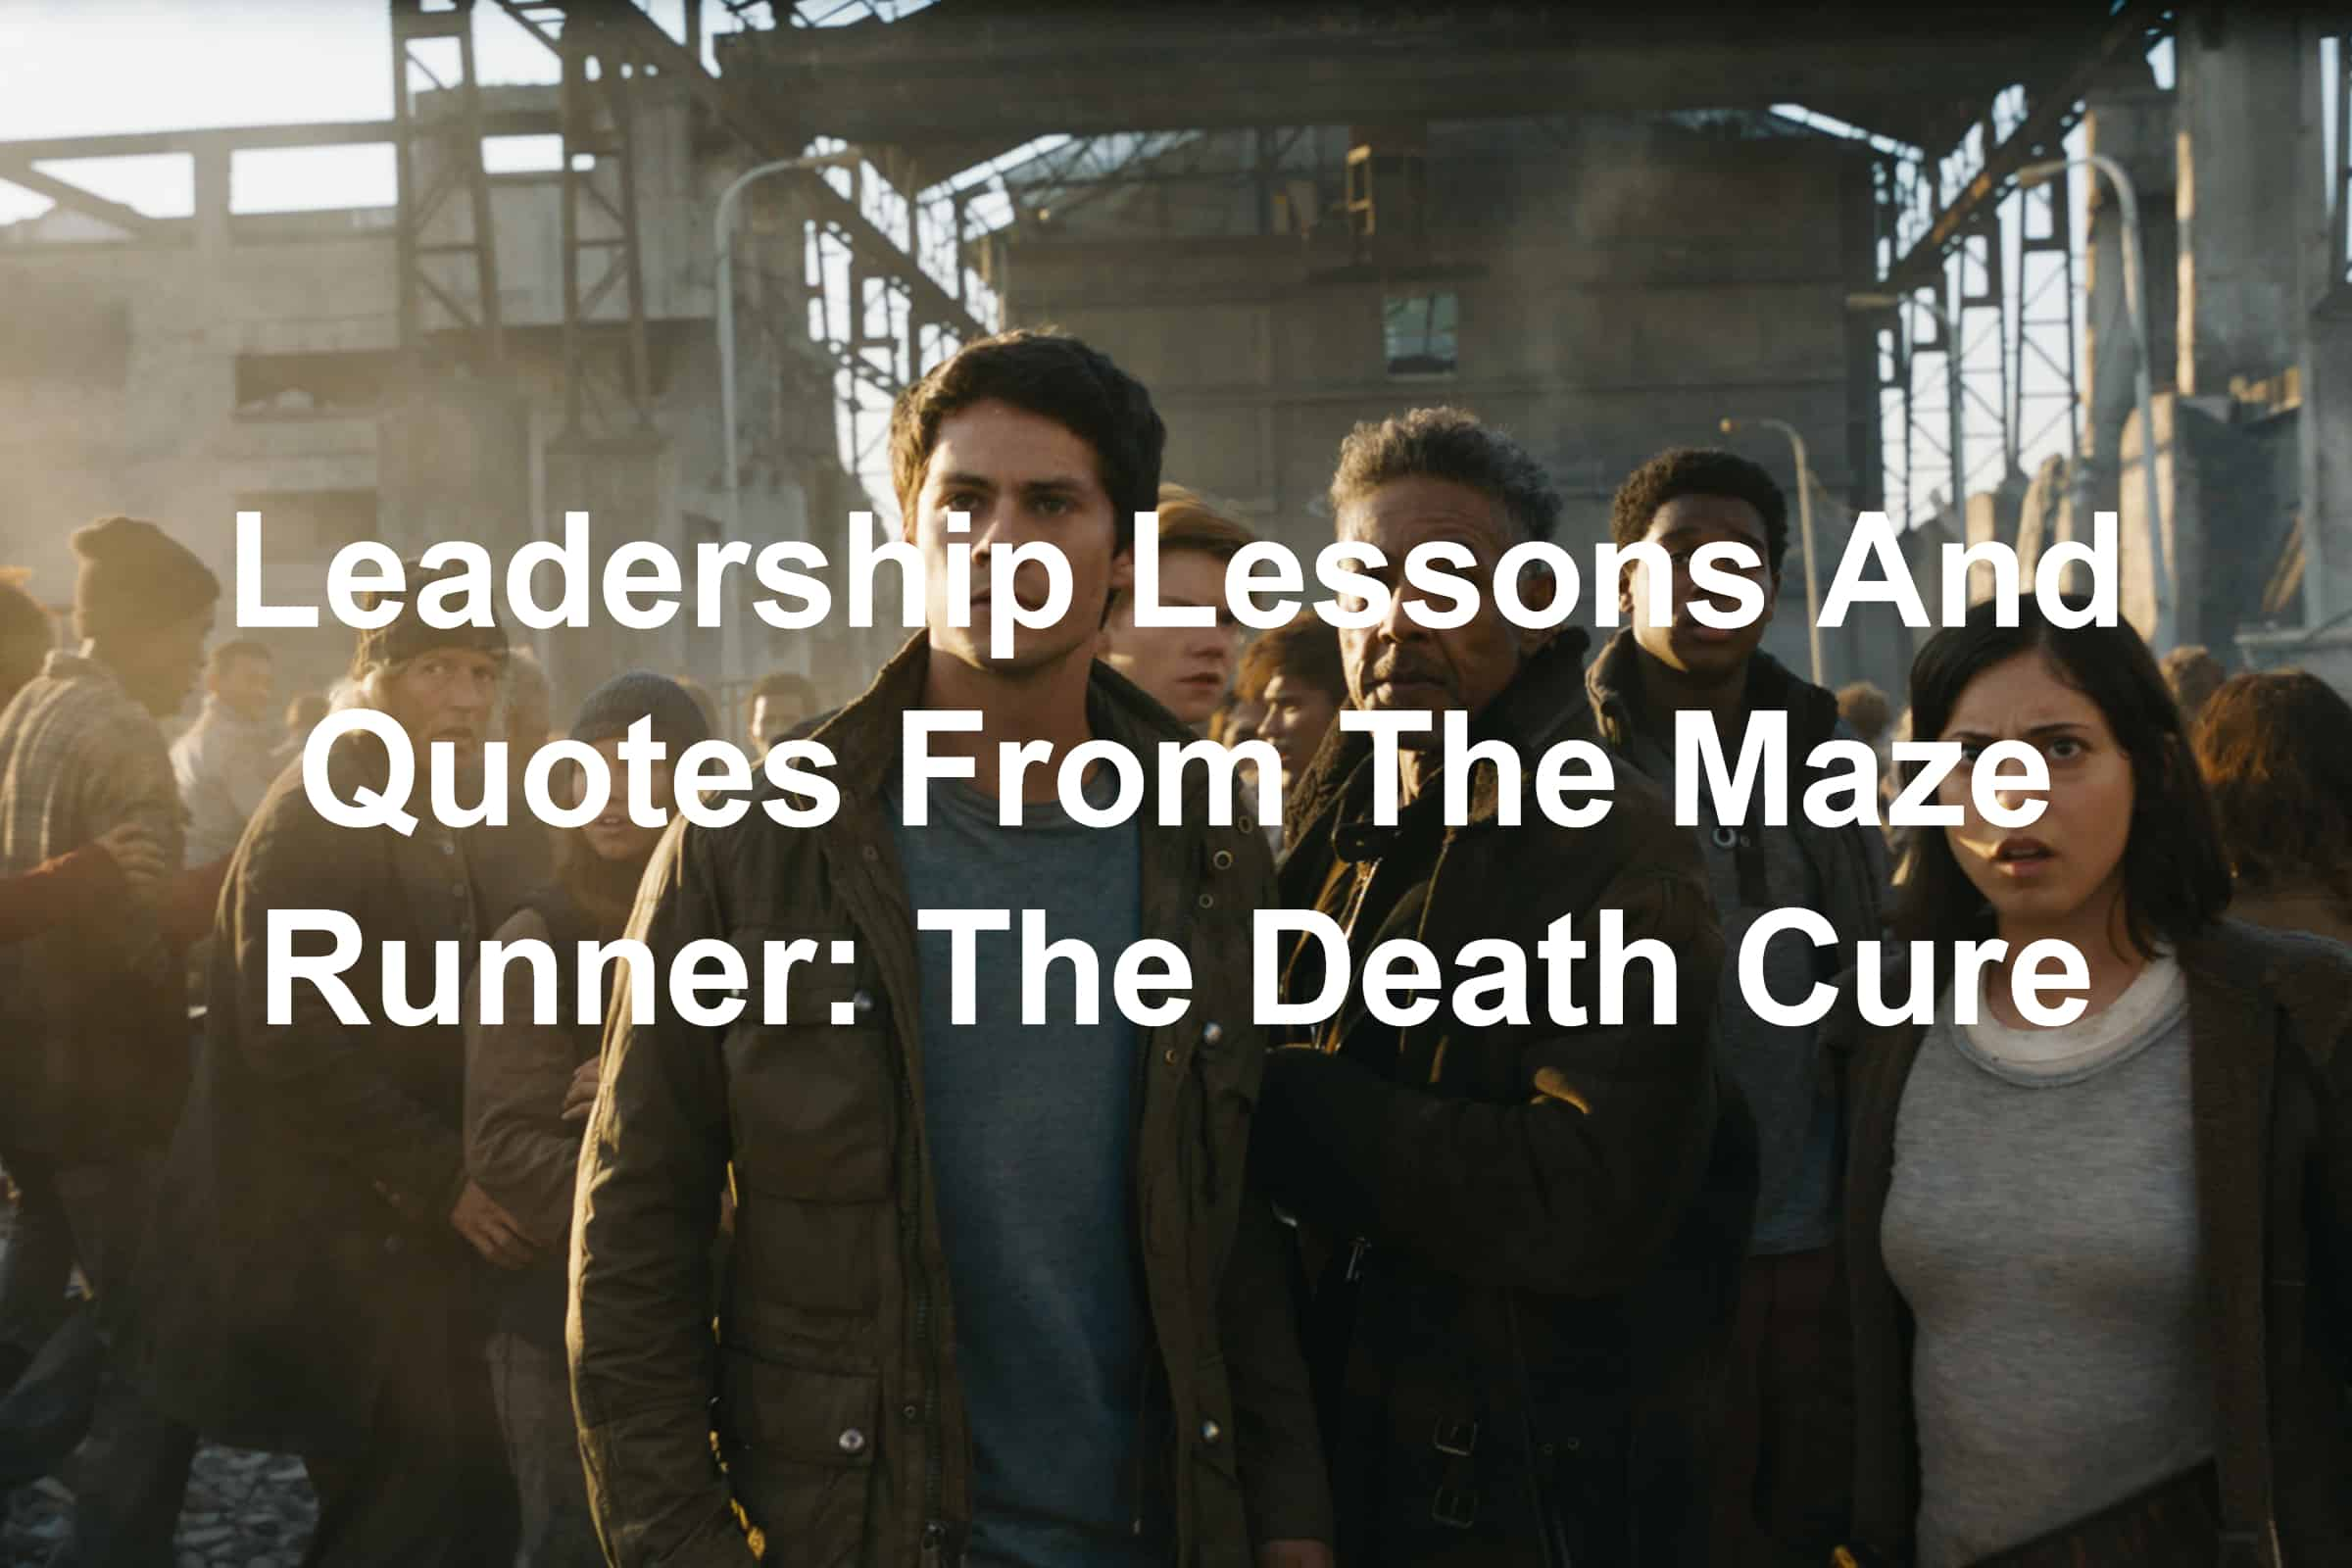 Quotes And Leadership Lessons From The Maze Runner: The Death Cure